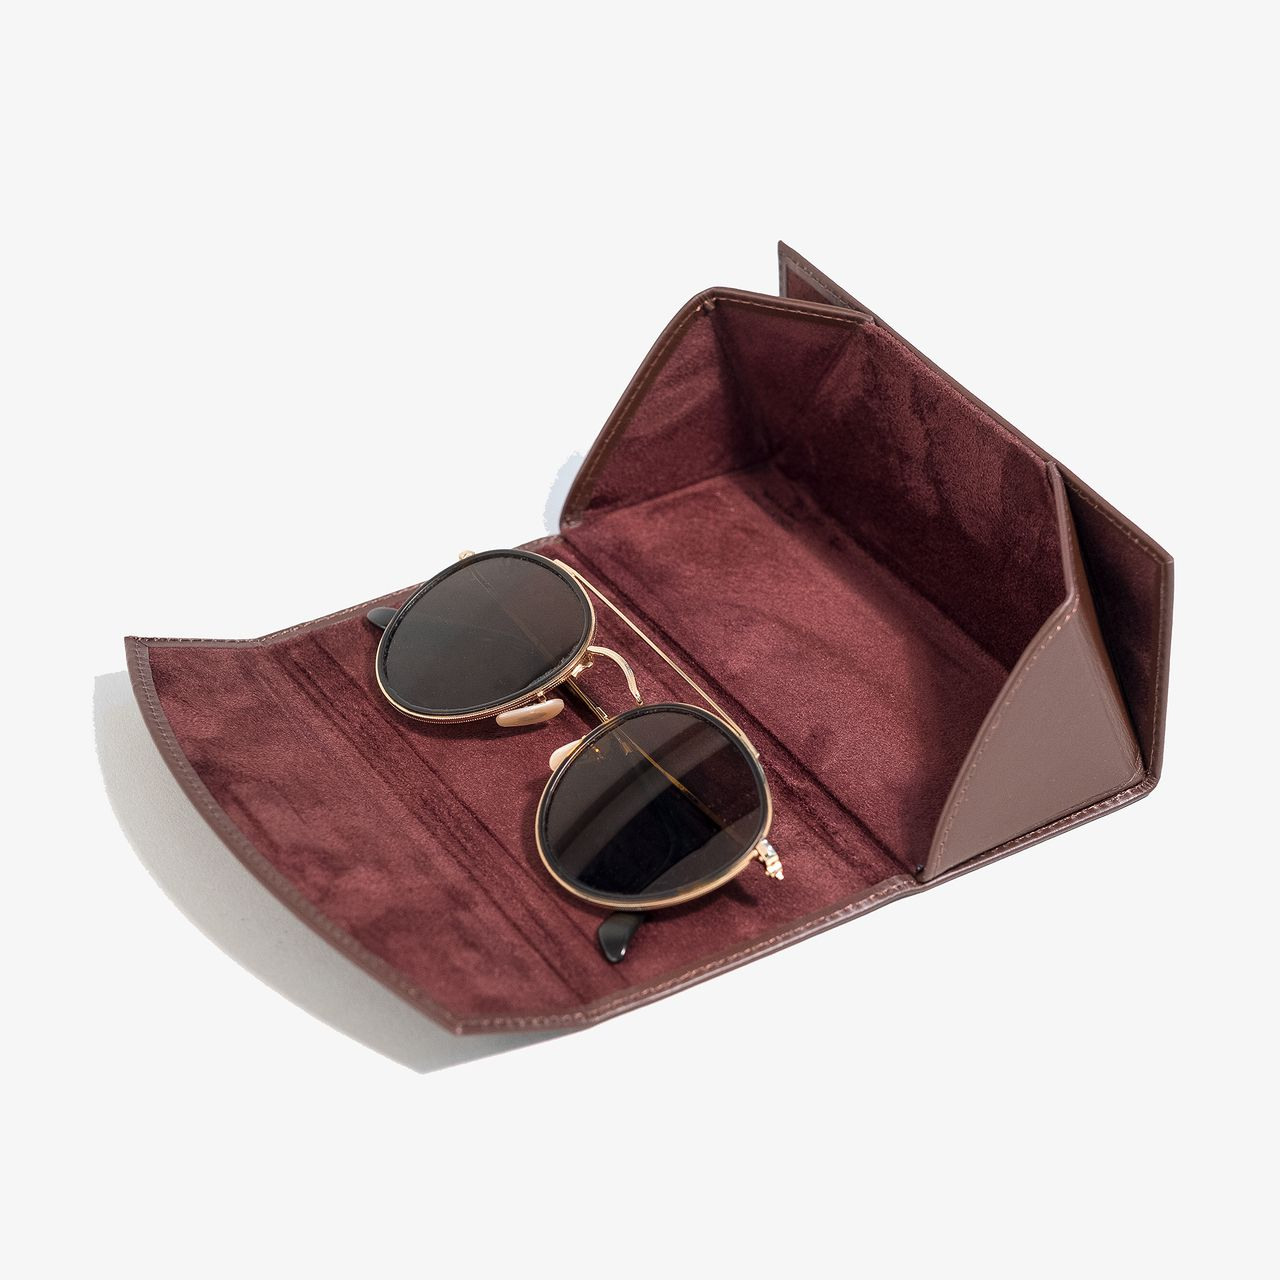 d4e36d4786ff Collapsible Glasses Case - Brown Leather - HOOK   ALBERT